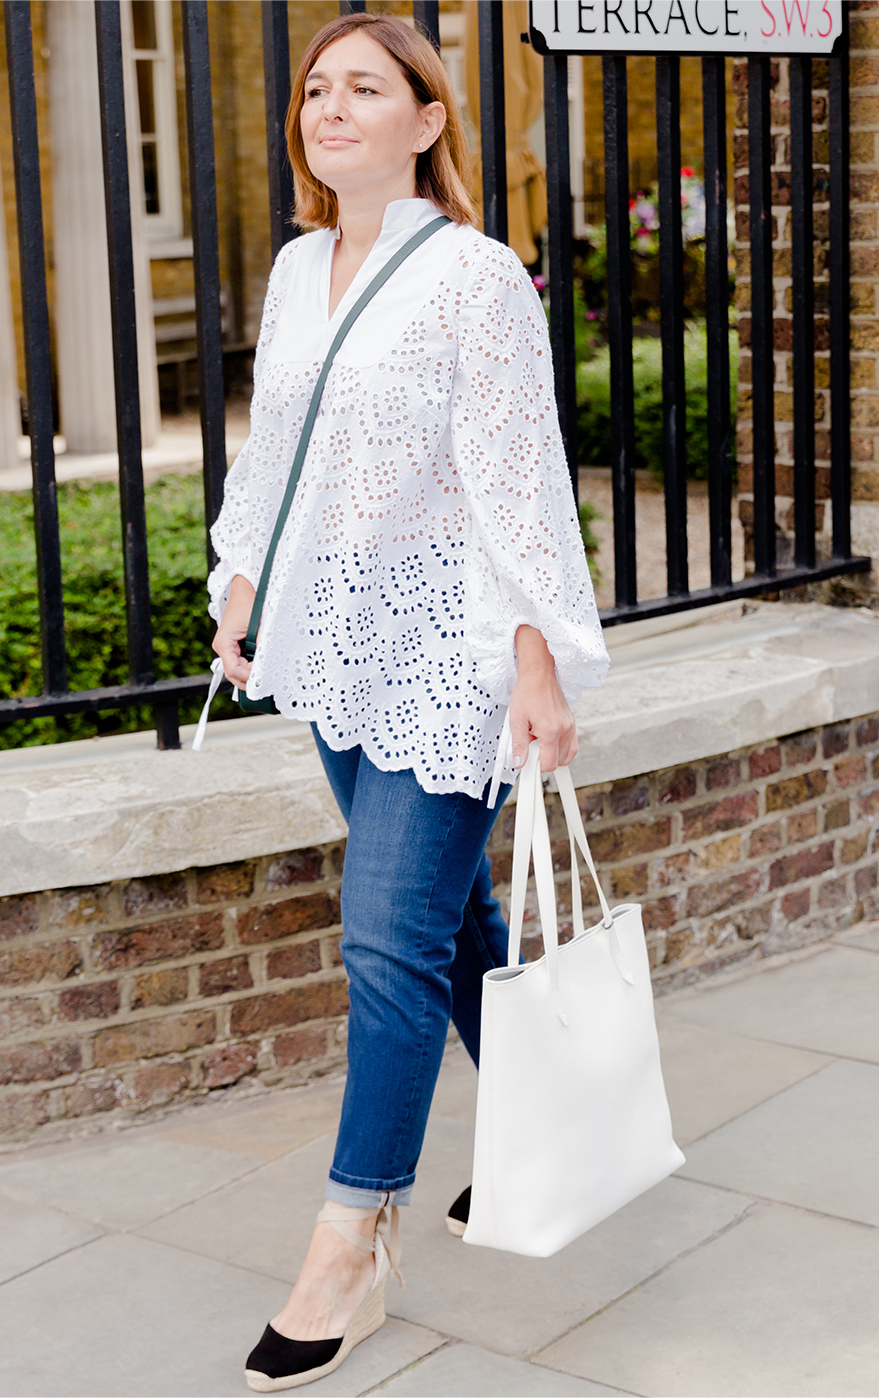 Hobbs UK & International Visual Specialist, Selena Trkuljia, photographed wearing a white blouse with blue denim jeans, black espadrilles, green crossbody bag and a white tote bag.